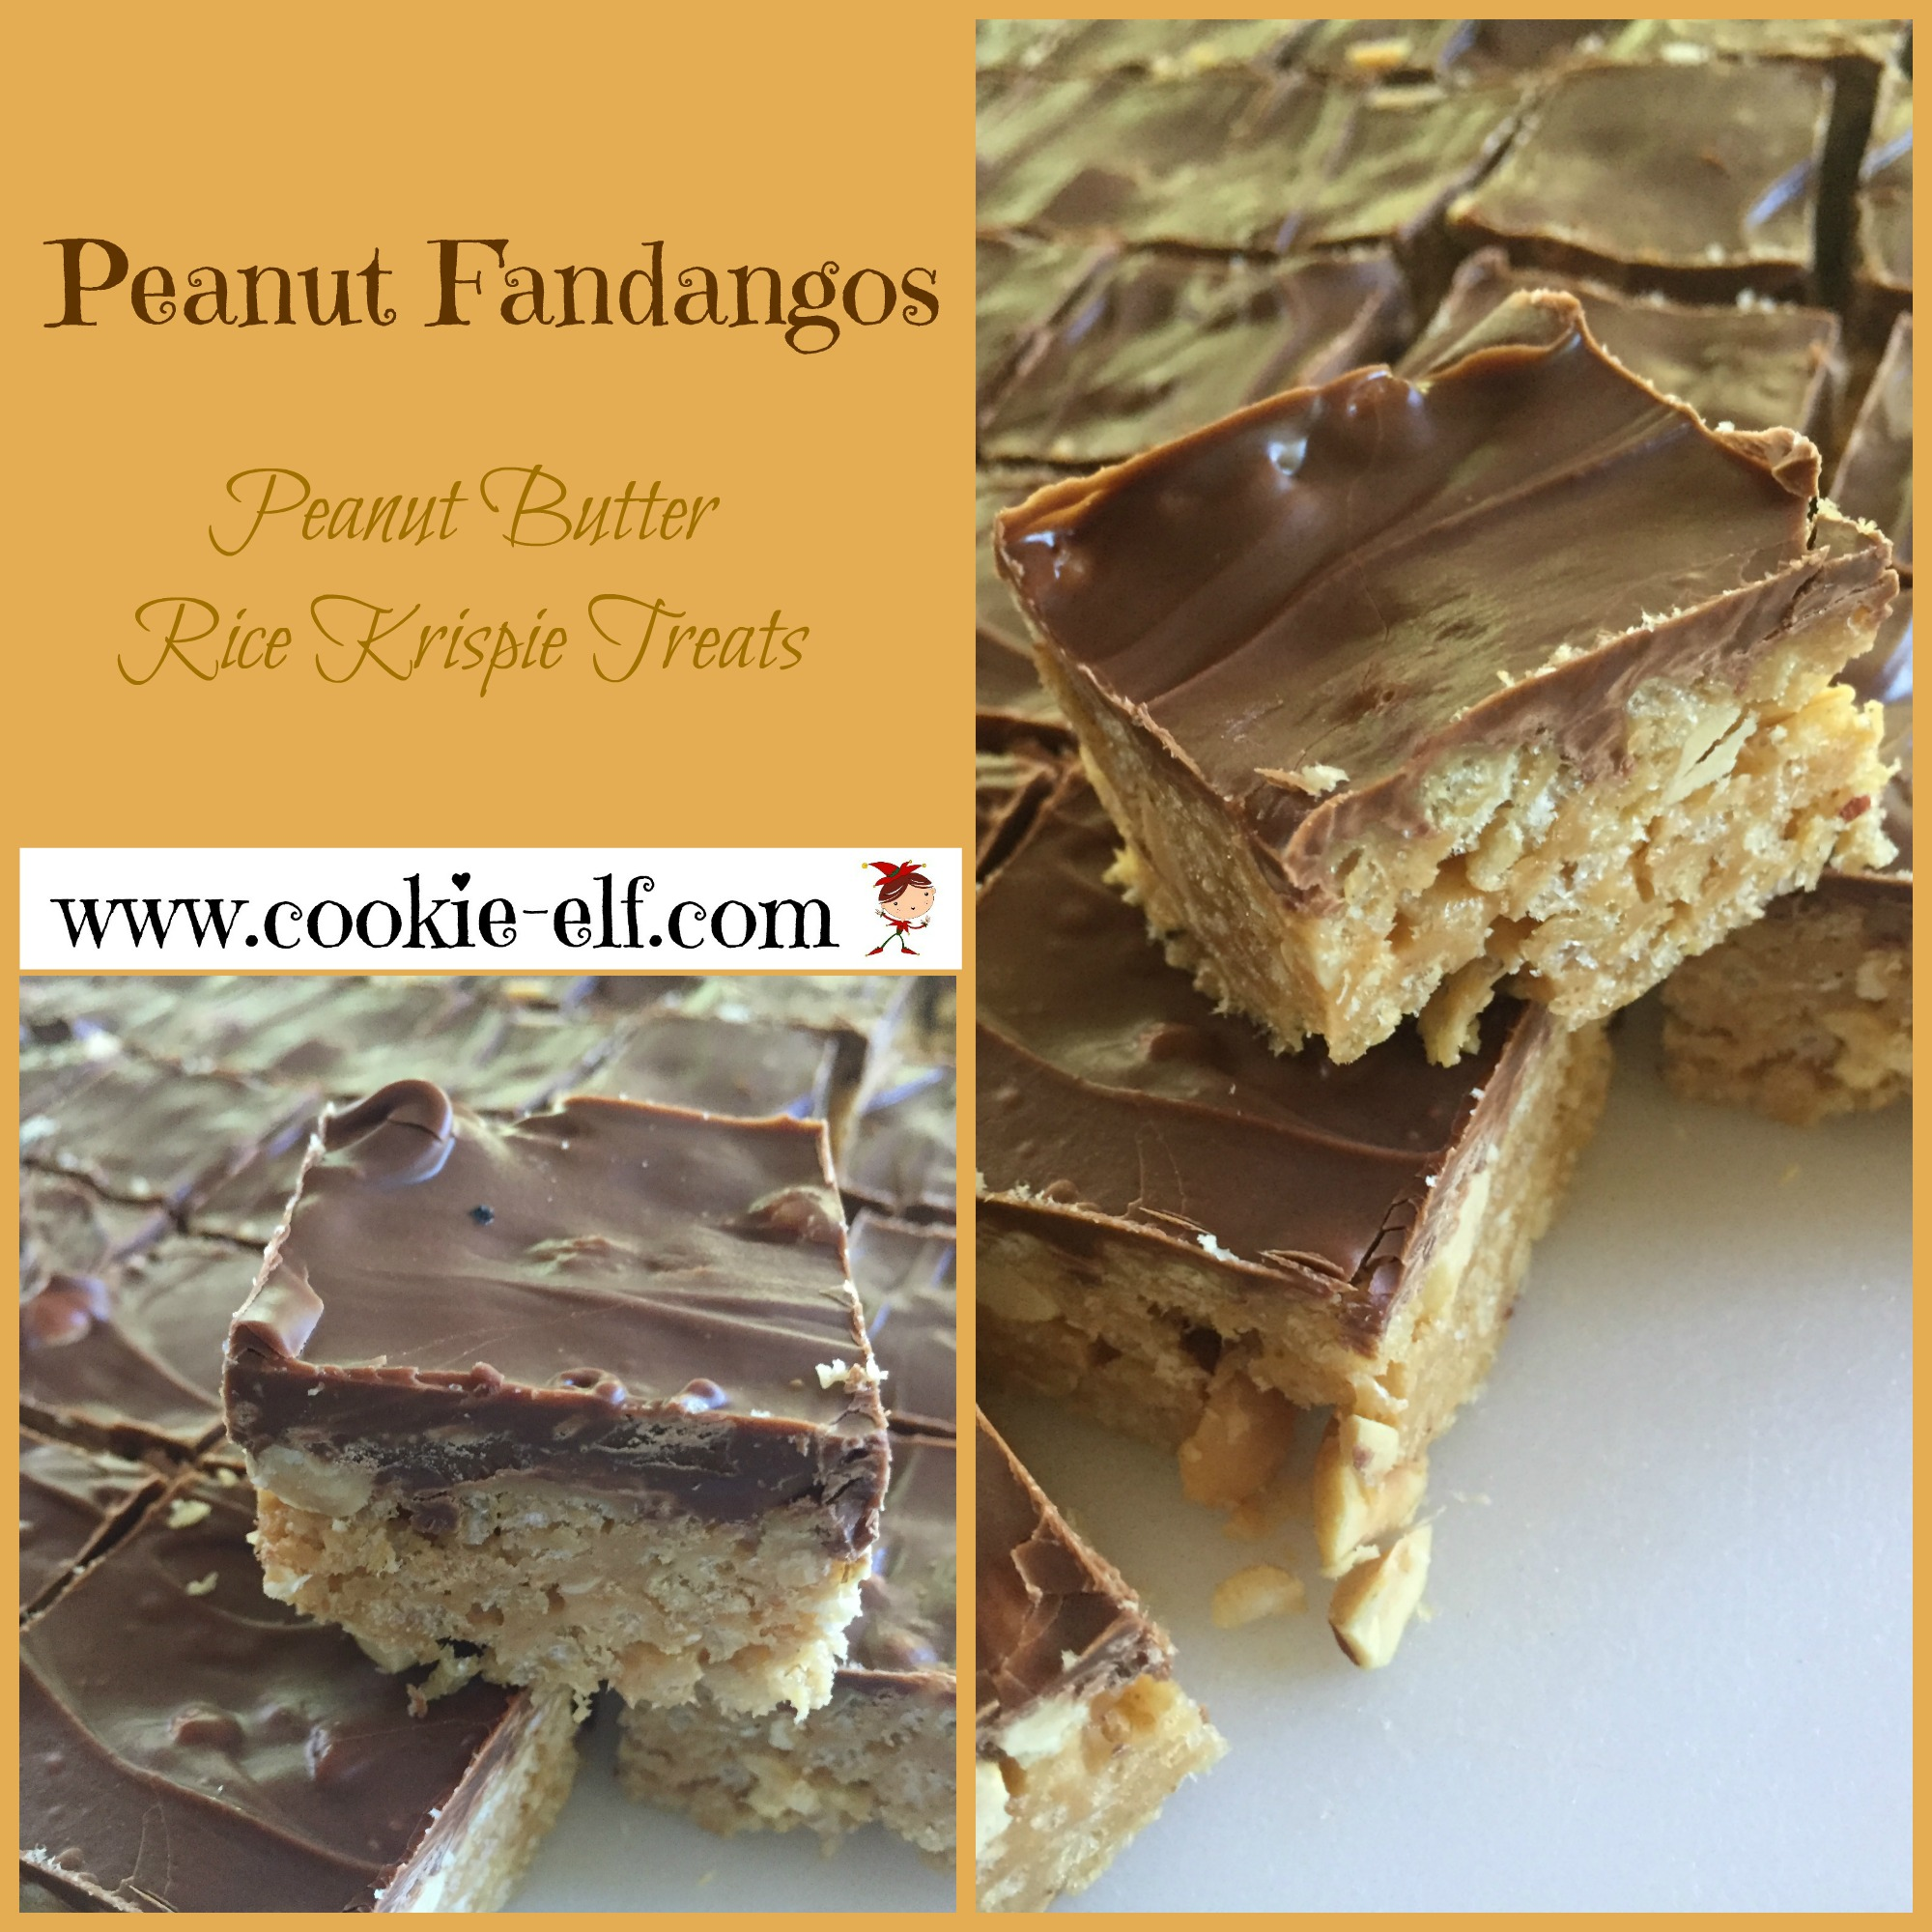 Peanut Fandangos - a Peanut Butter Rice Krispies Treat Variation from The Cookie Elf